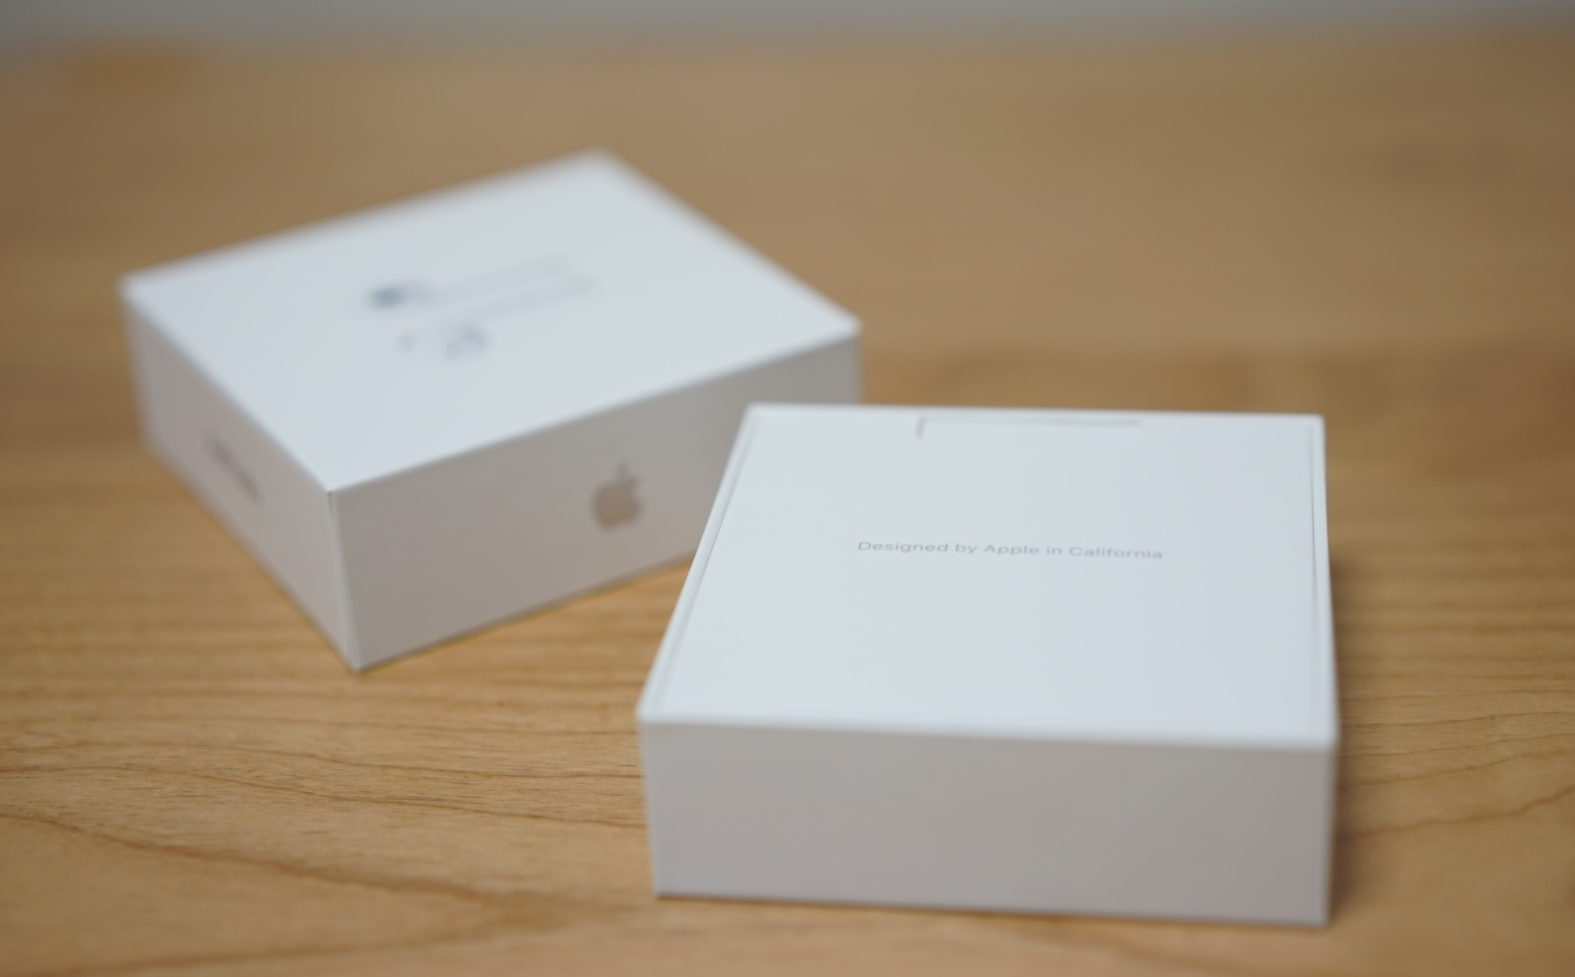 airpods opened box